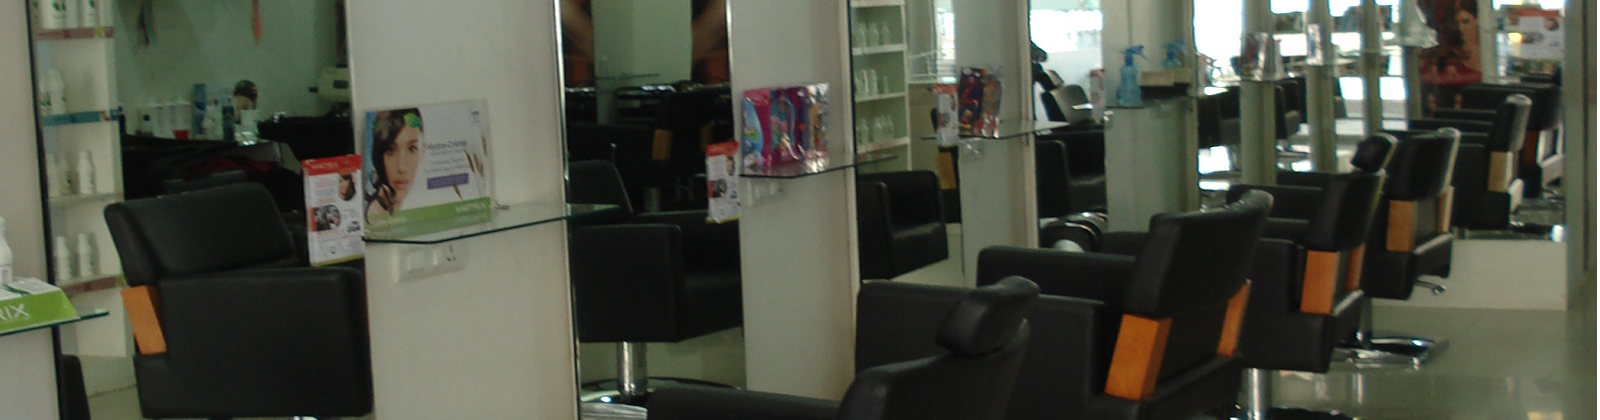 Shear Genius Unisex Salon |